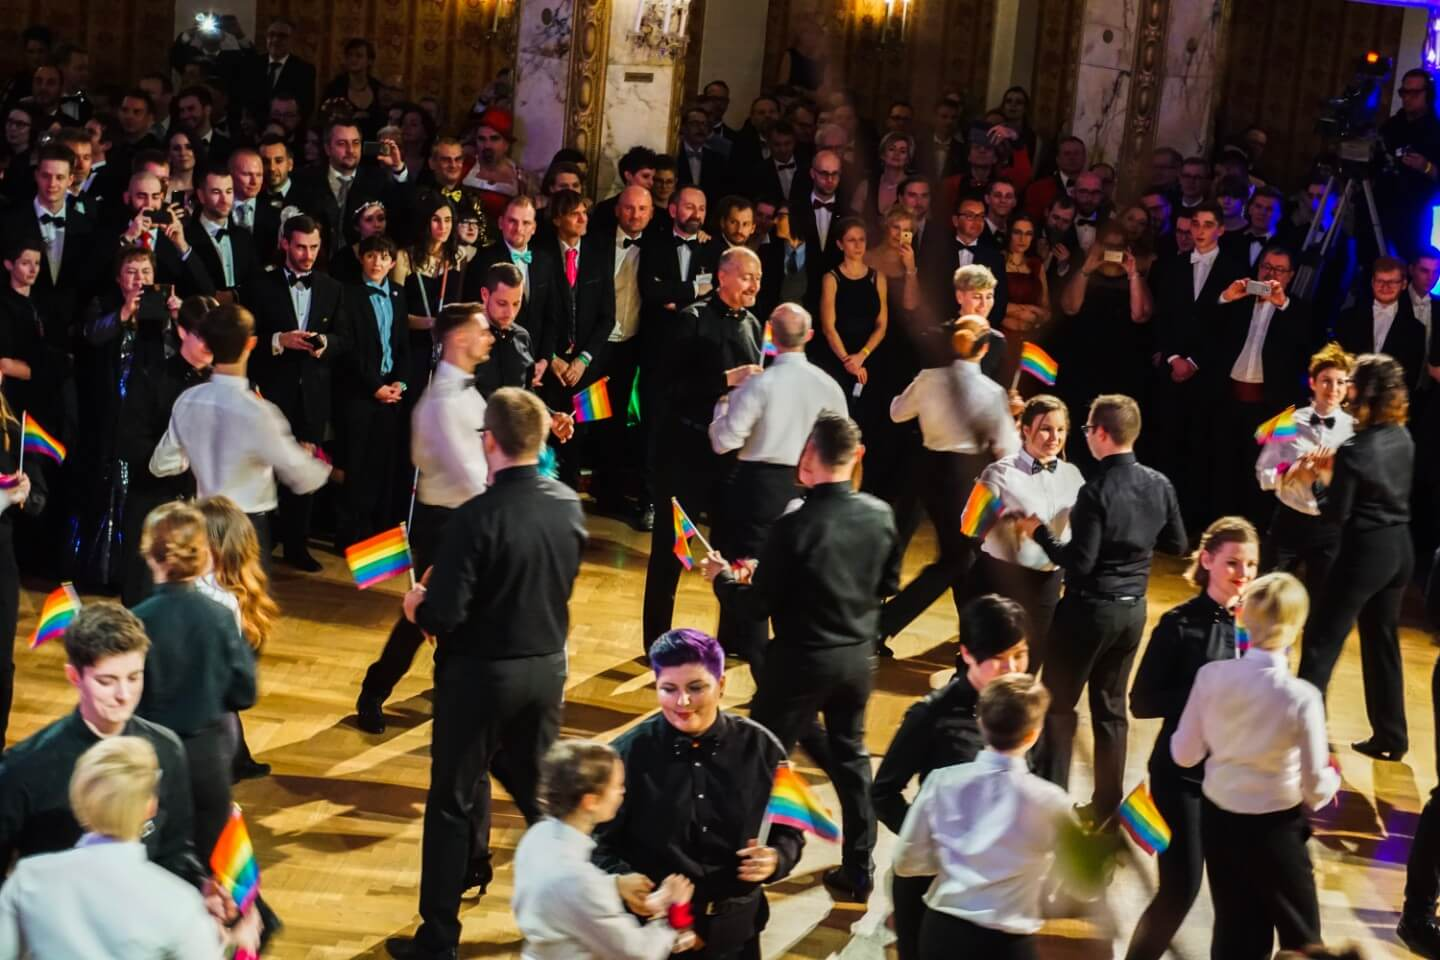 Viennese Ball Season - The LGBTQ Rainbow Ball in Vienna, Austria